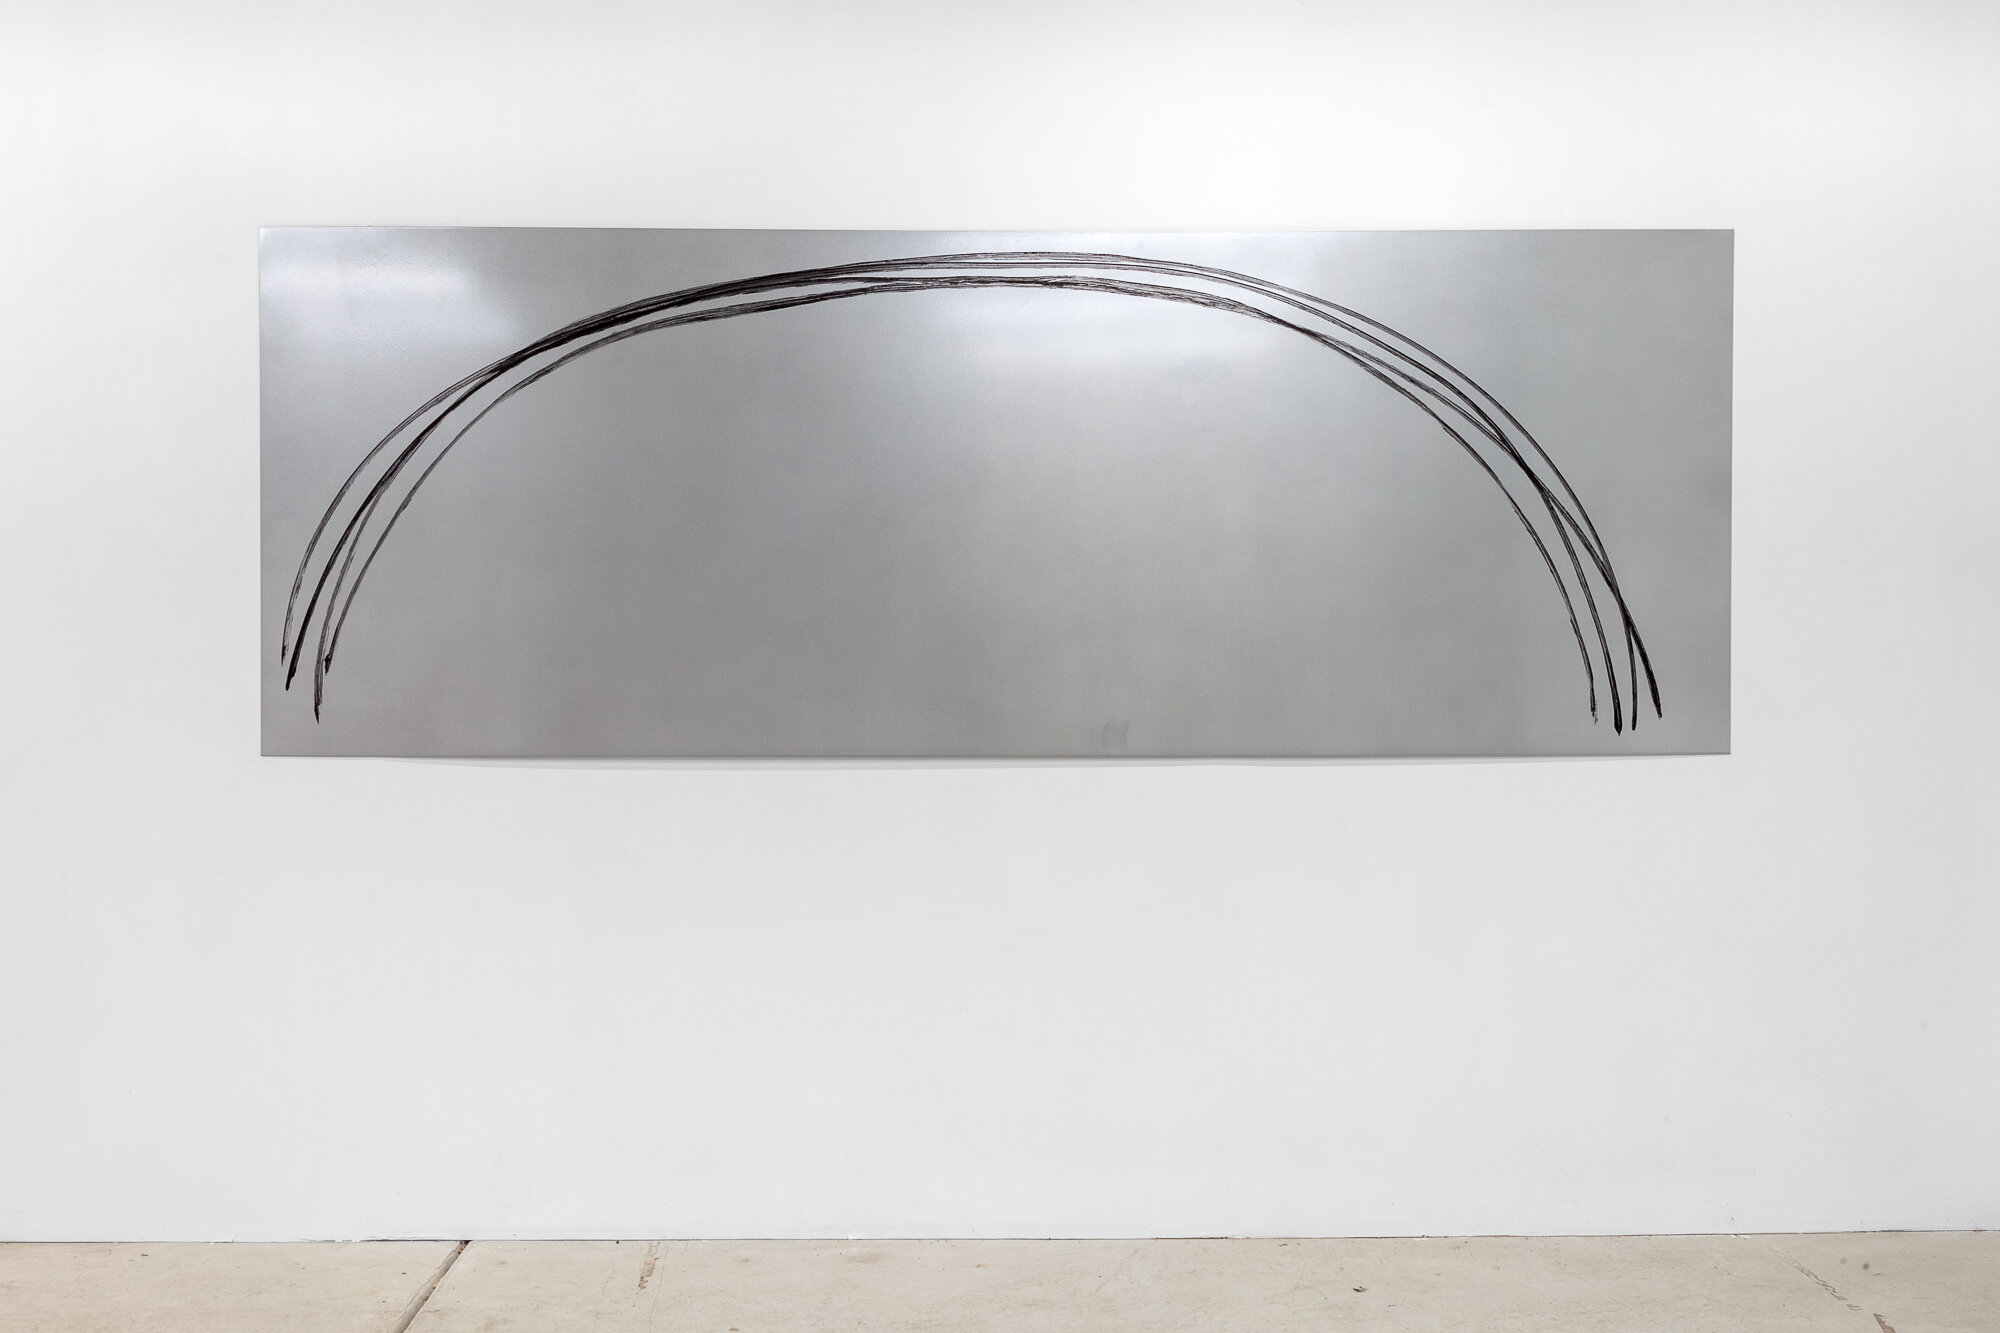 Image: Sarah Ortmeyer,  ARCUS , 2019. Gesso on metal.  INFERNO CHICAGO , curated by Stephanie Cristello, Chicago Manual Style (Chicago, IL). Copyright Sarah Ortmeyer. Courtesy of Dvir, Tel Aviv / Brussels. Photographer: Robert Chase Heishman.